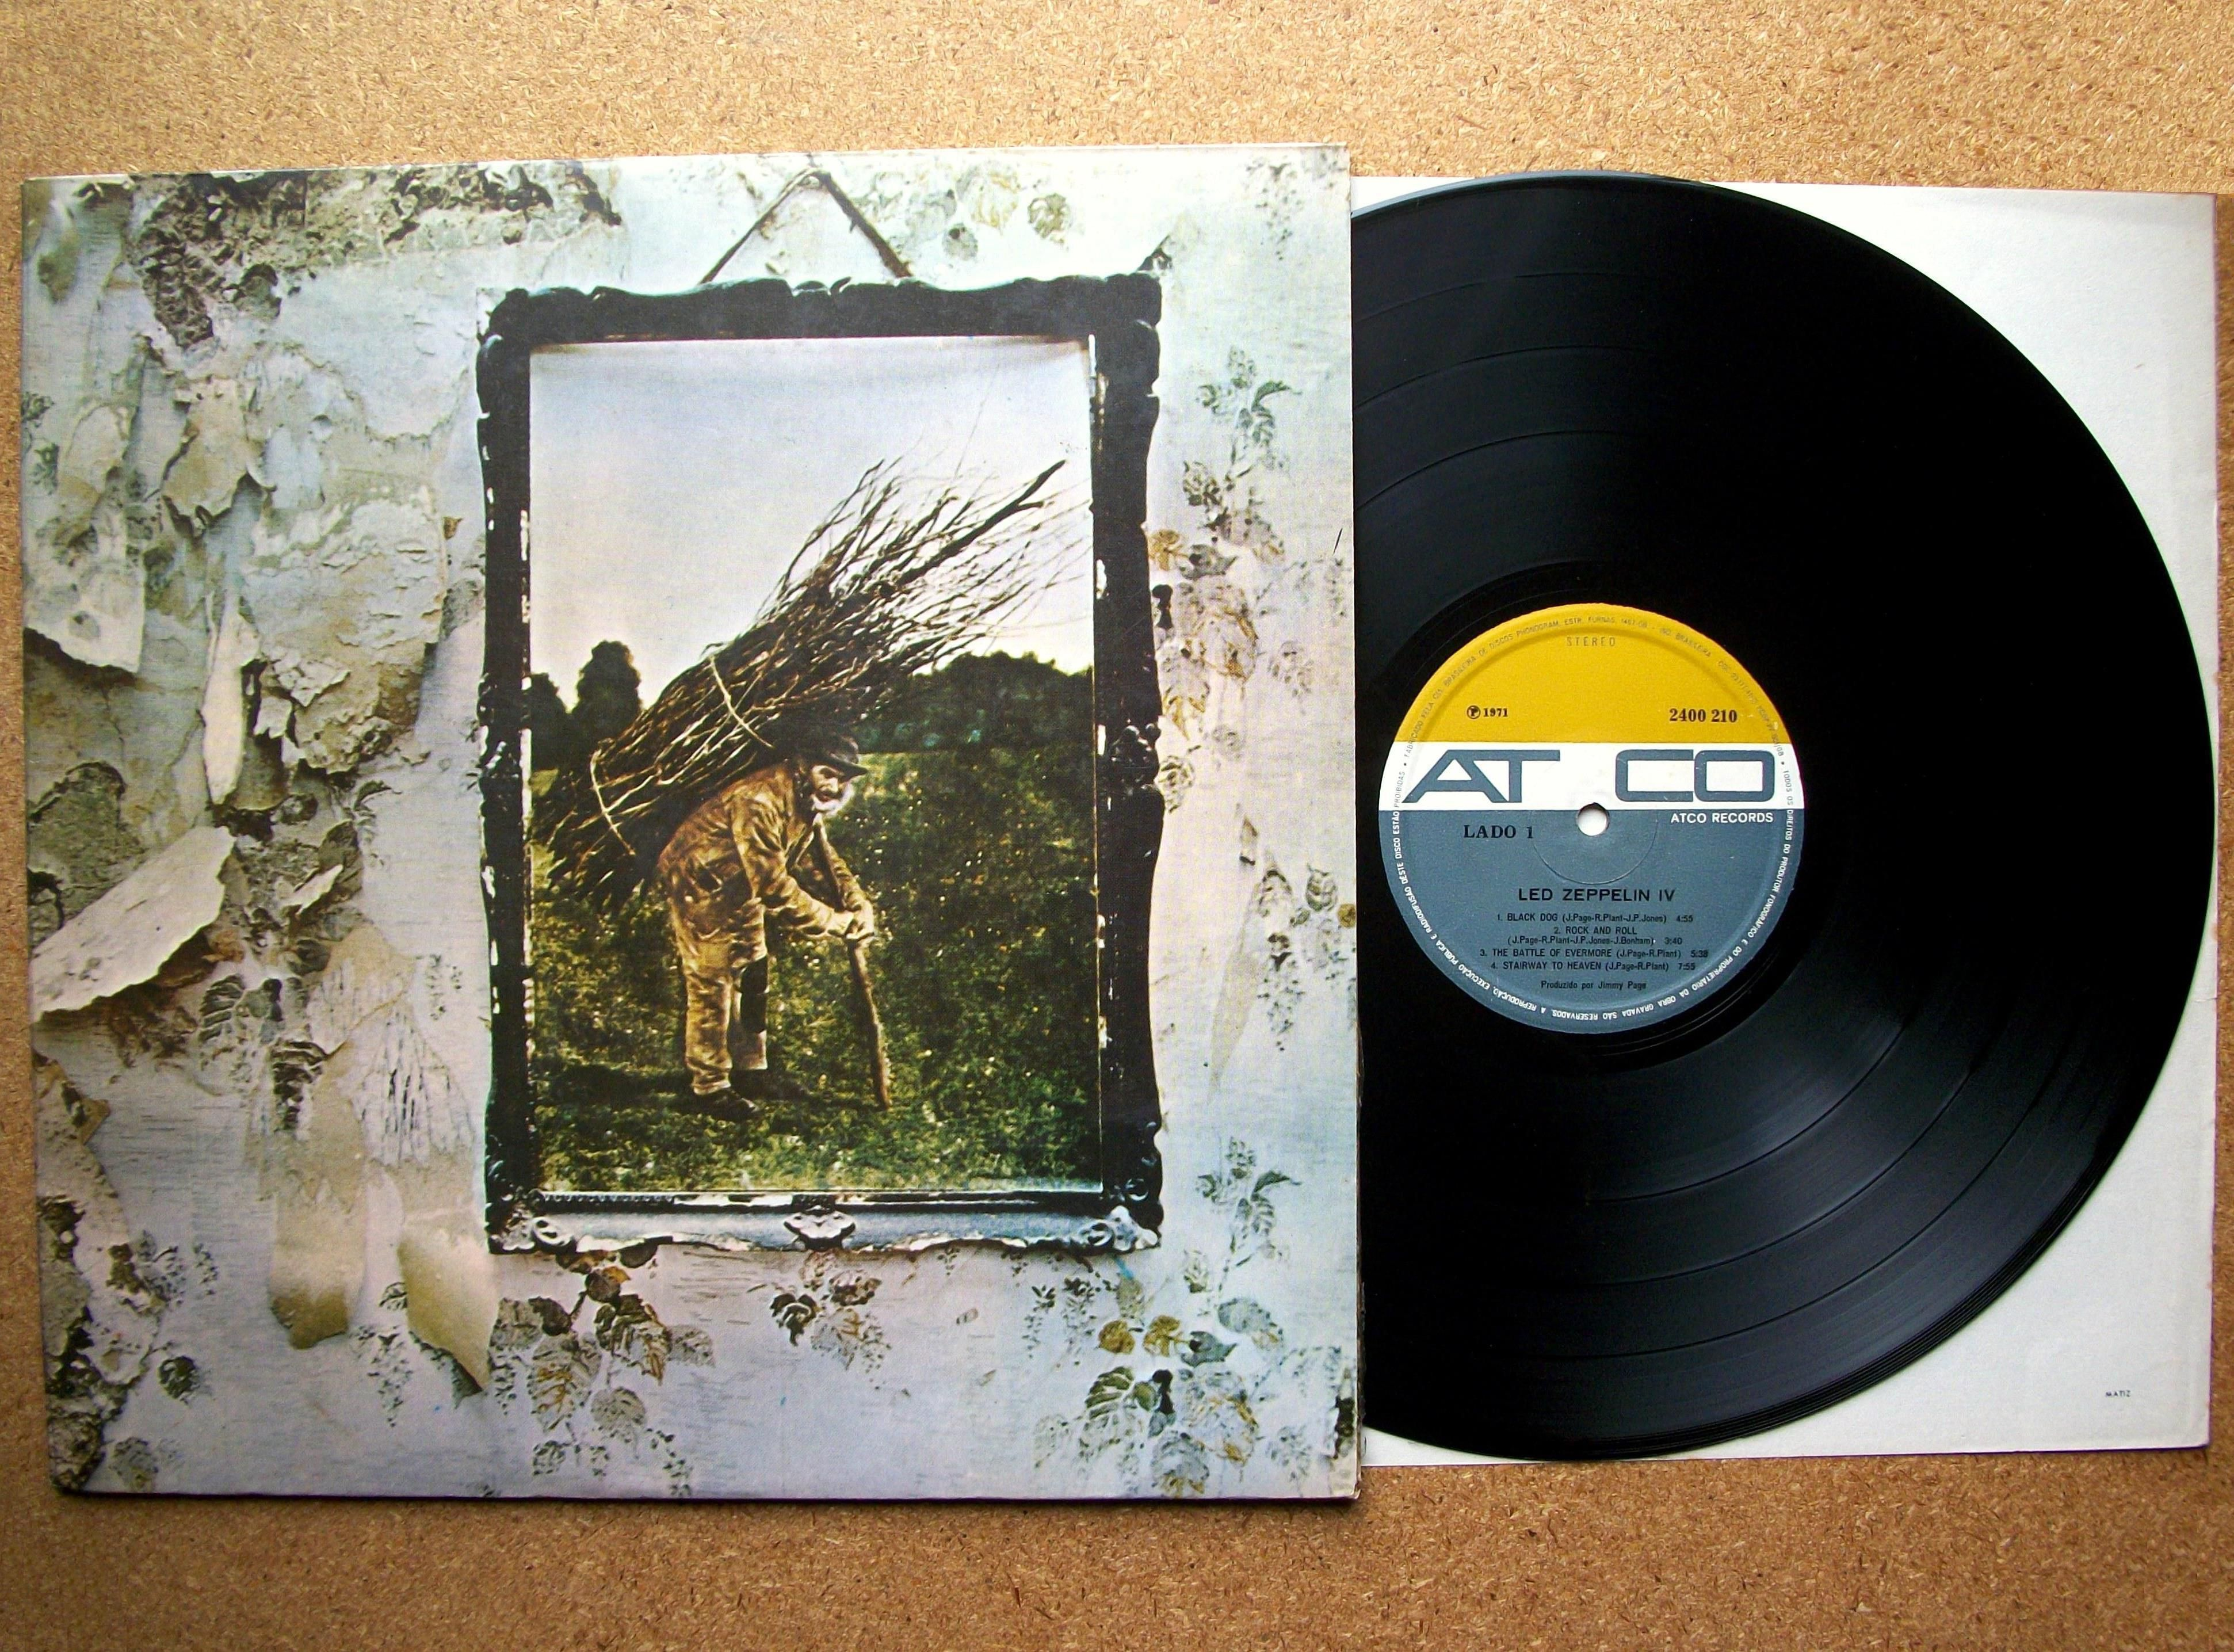 Led zeppelin iv need to buy vinyls pinterest led zeppelin dec 4 1971 led zeppelin started a two week run at on the uk chart with the four symbols album otherwise known as led zeppelin iv featuring biocorpaavc